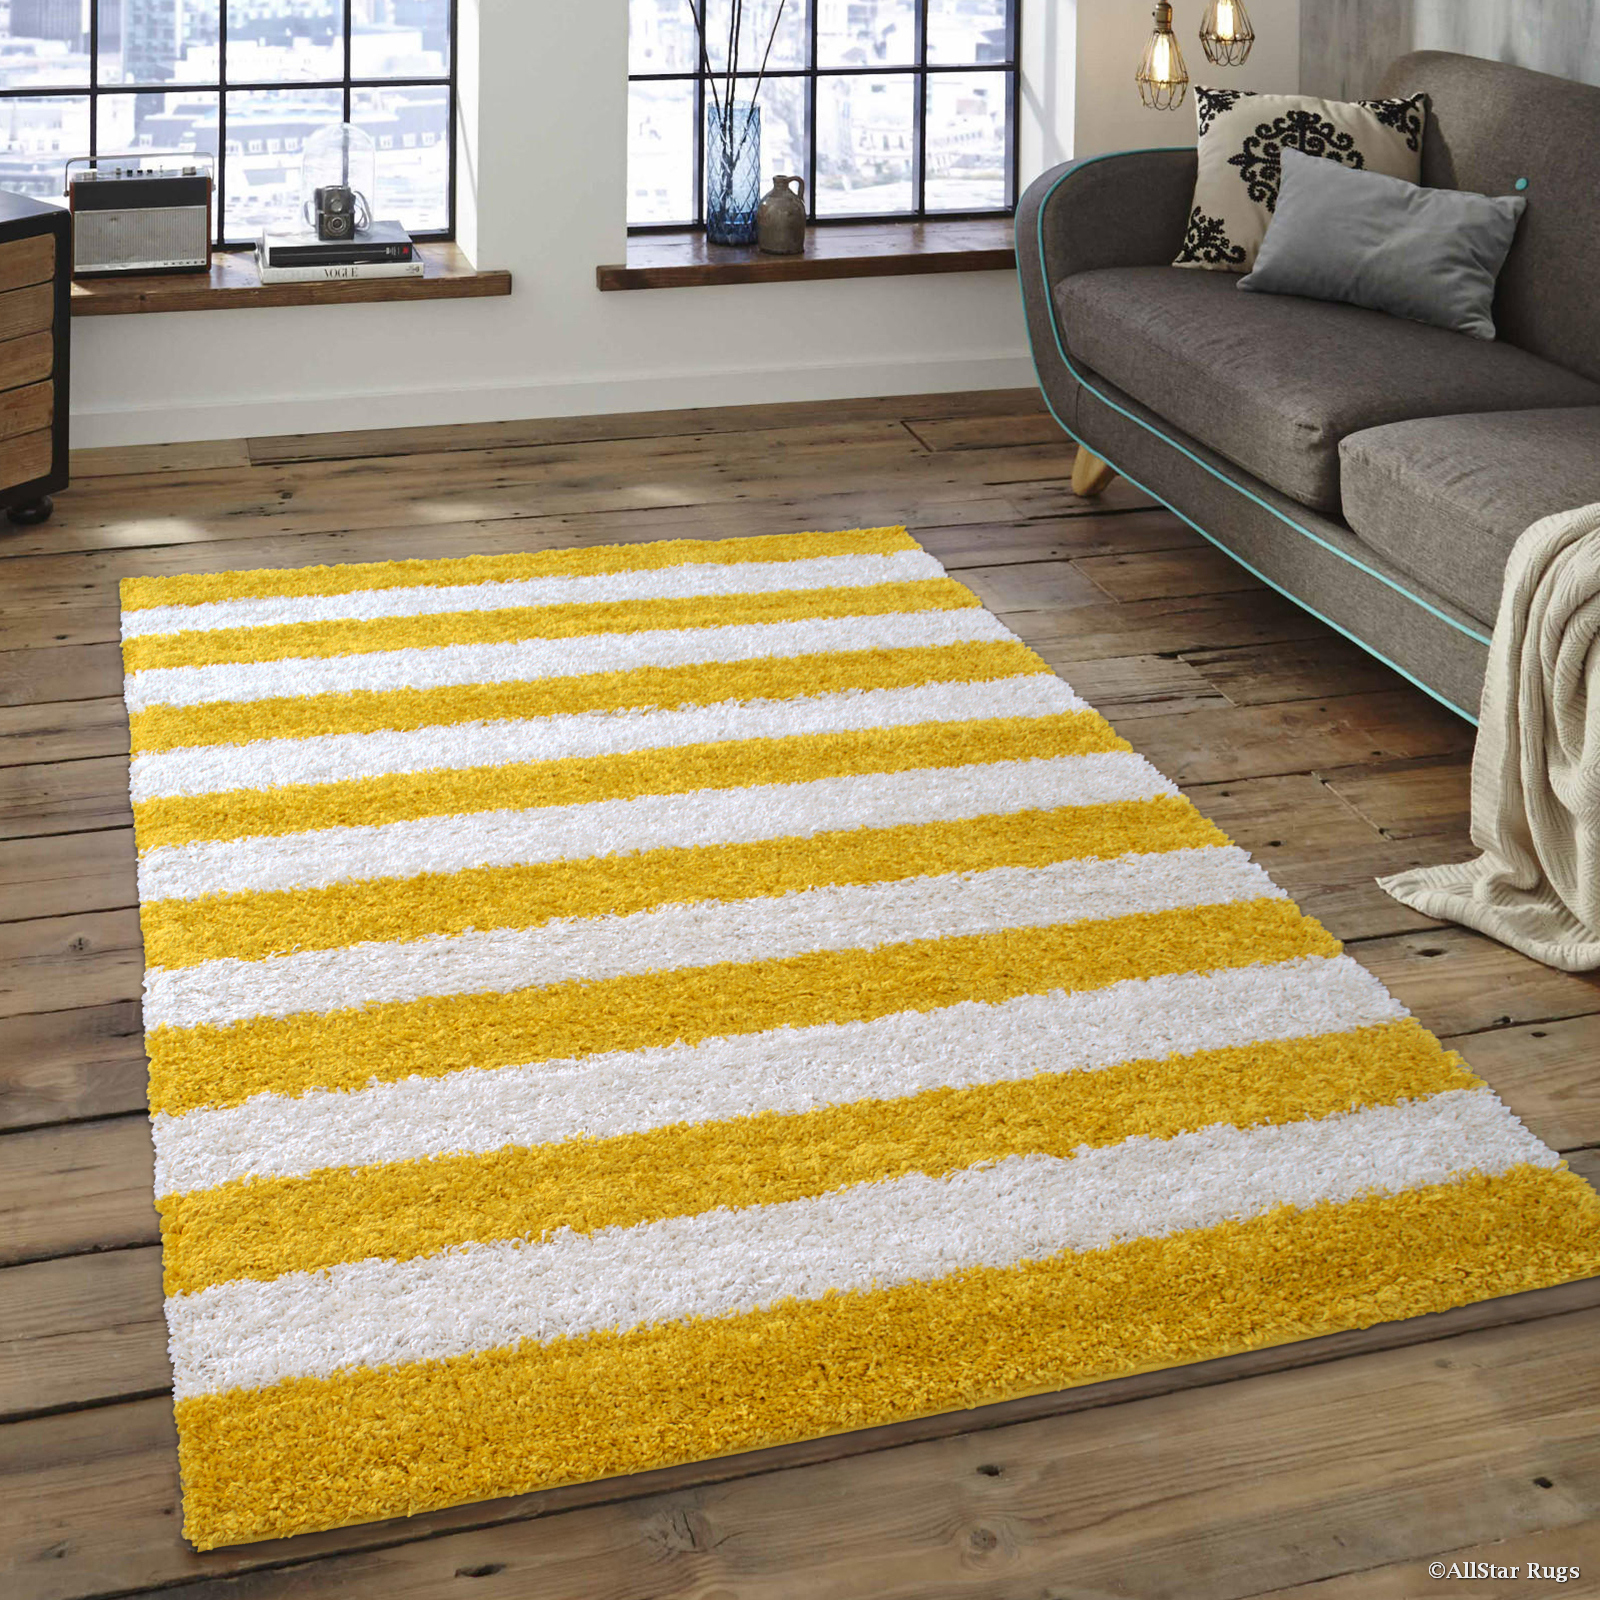 "Allstar Modern Contemporary Canary High Pile Posh and Shaggy Striped Area Rug (5' 0"" x 7' 0"")"